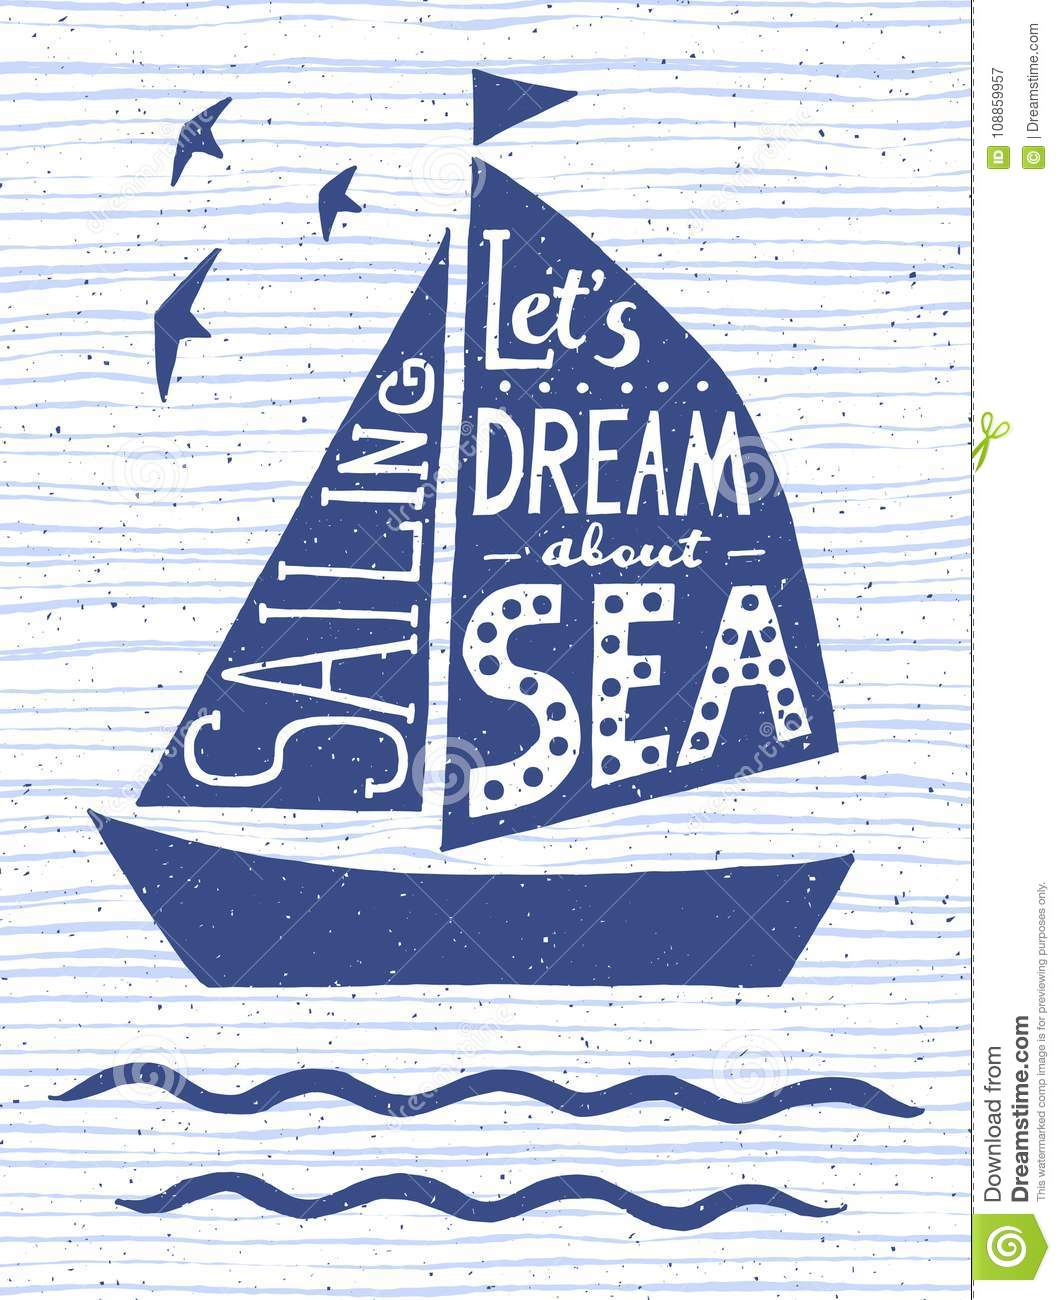 Let`s dream about sea. Hand drawn vintage poster with quote lettering. Inspirational and motivational print for T-shirts and bags.